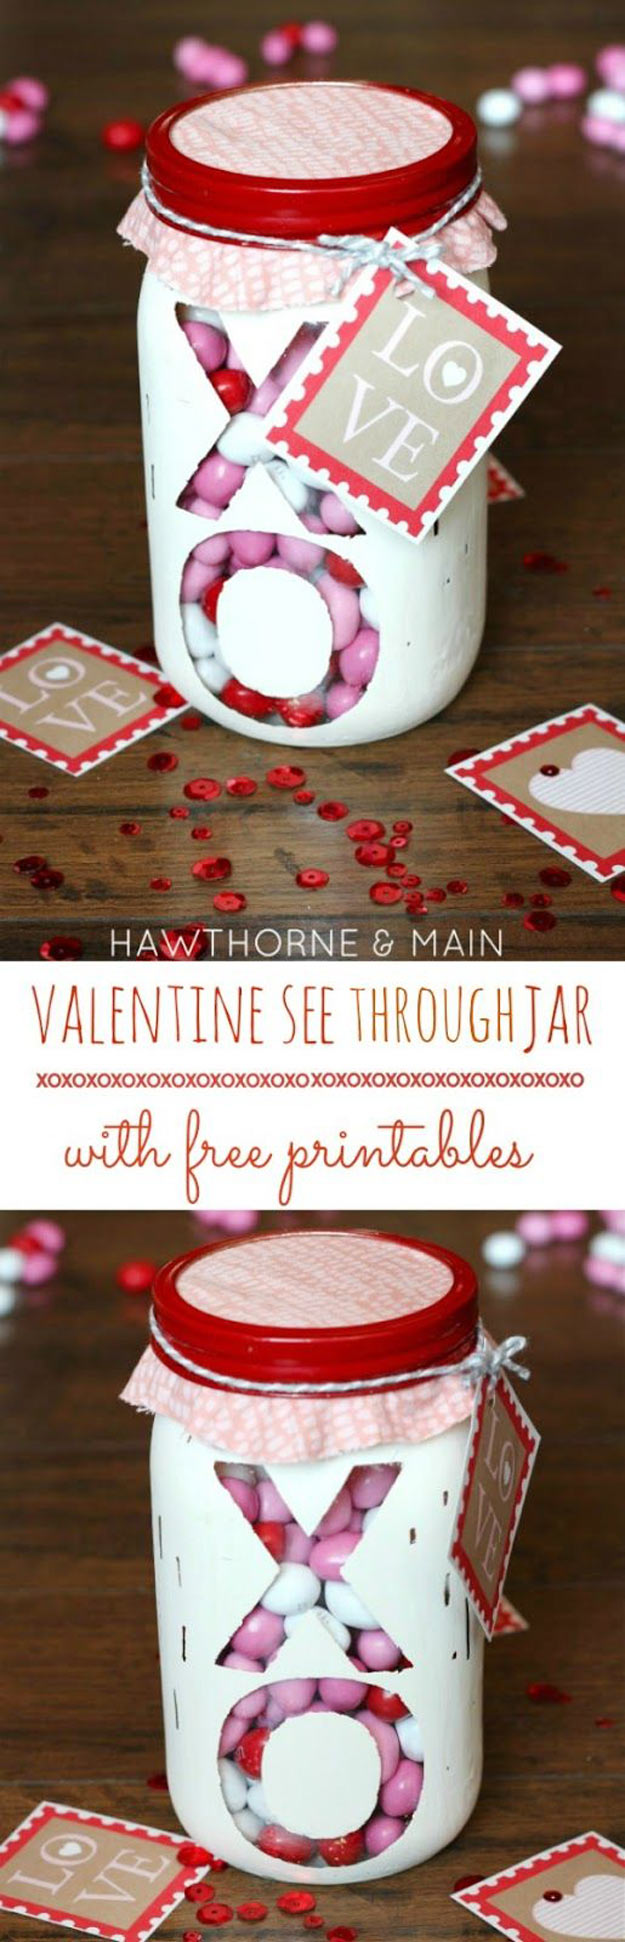 Mason Jar Valentine Gifts and Crafts | DIY Ideas for Valentines Day for Cute Gift Giving and Decor | Valentine-See-Through-Jar | #valentines